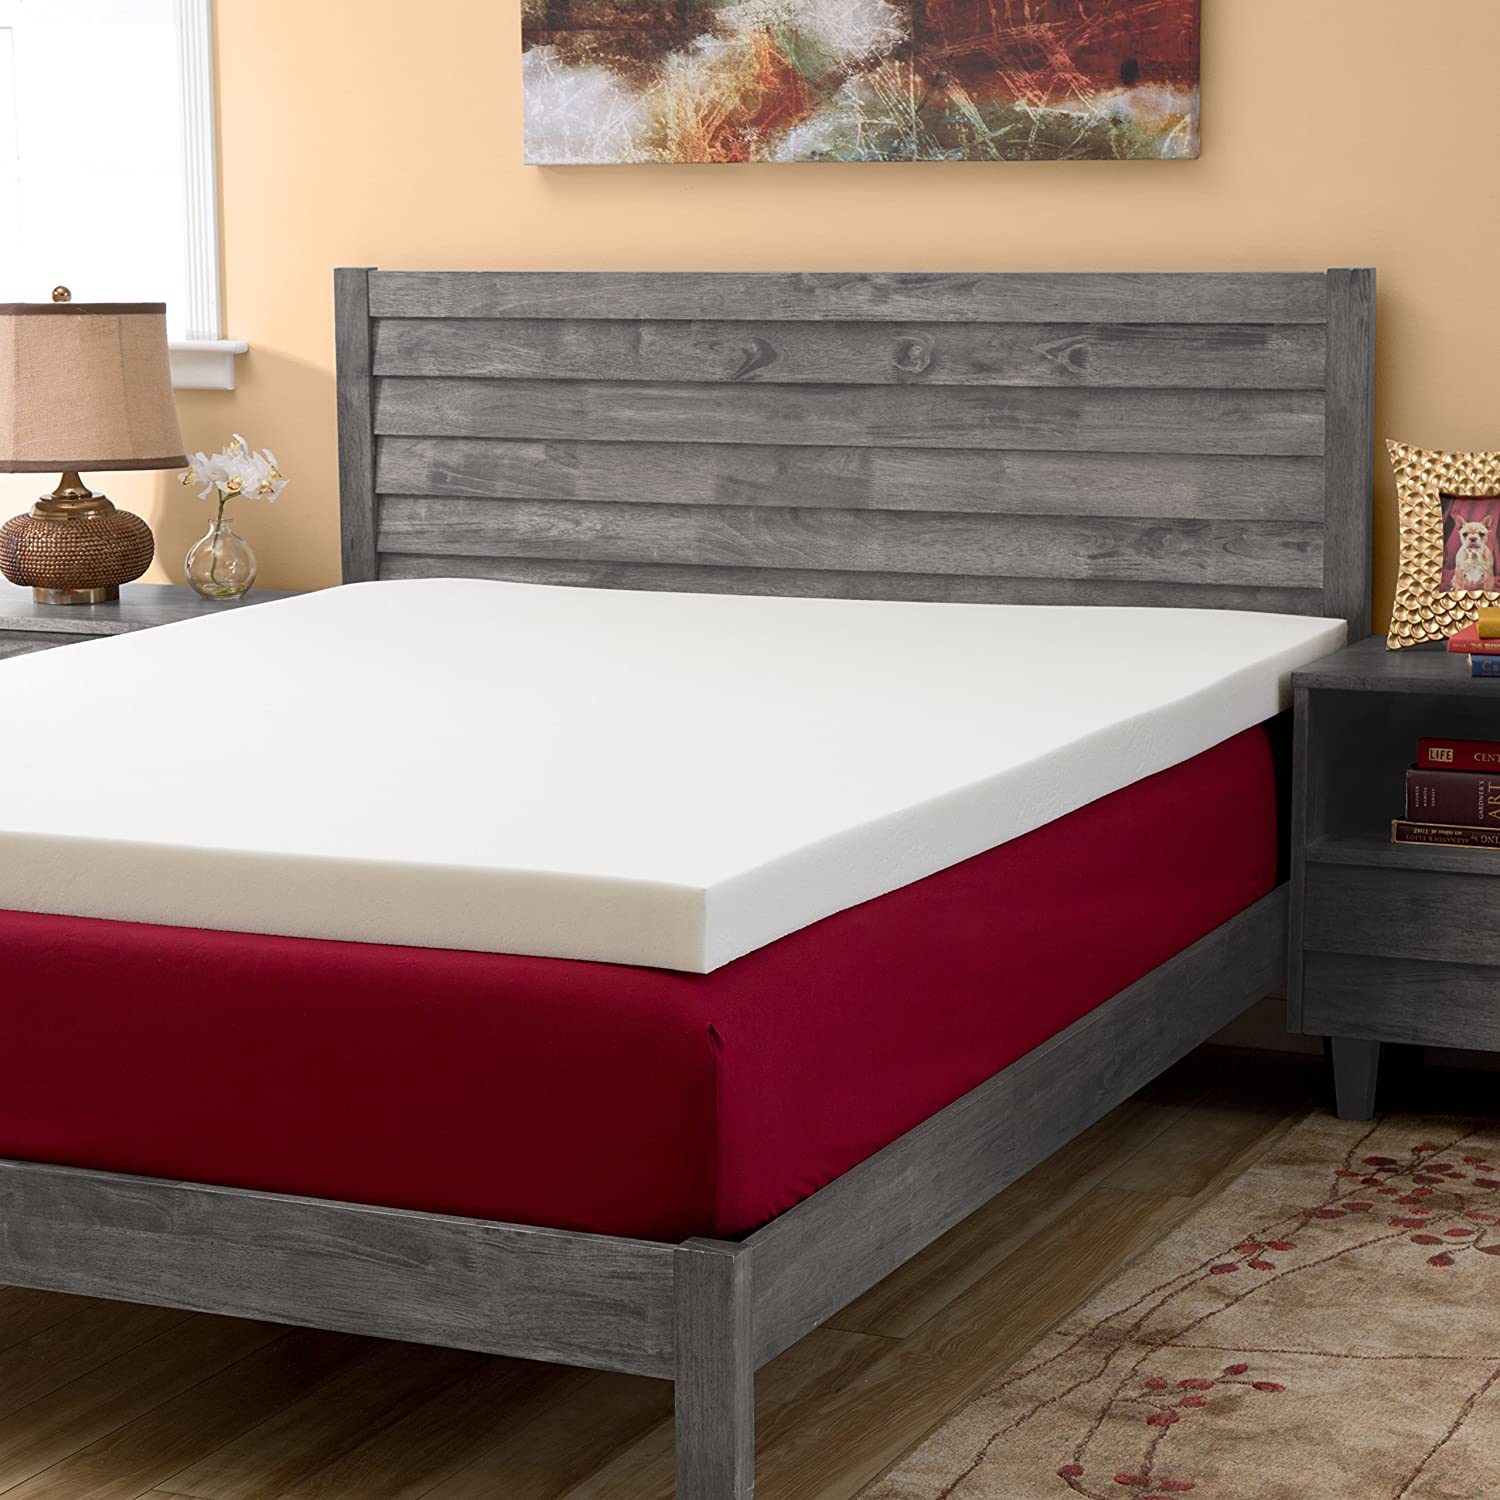 LIFE Home Home Life Cooling Gel Ventilated Memory Thin Mattress, Twin, White